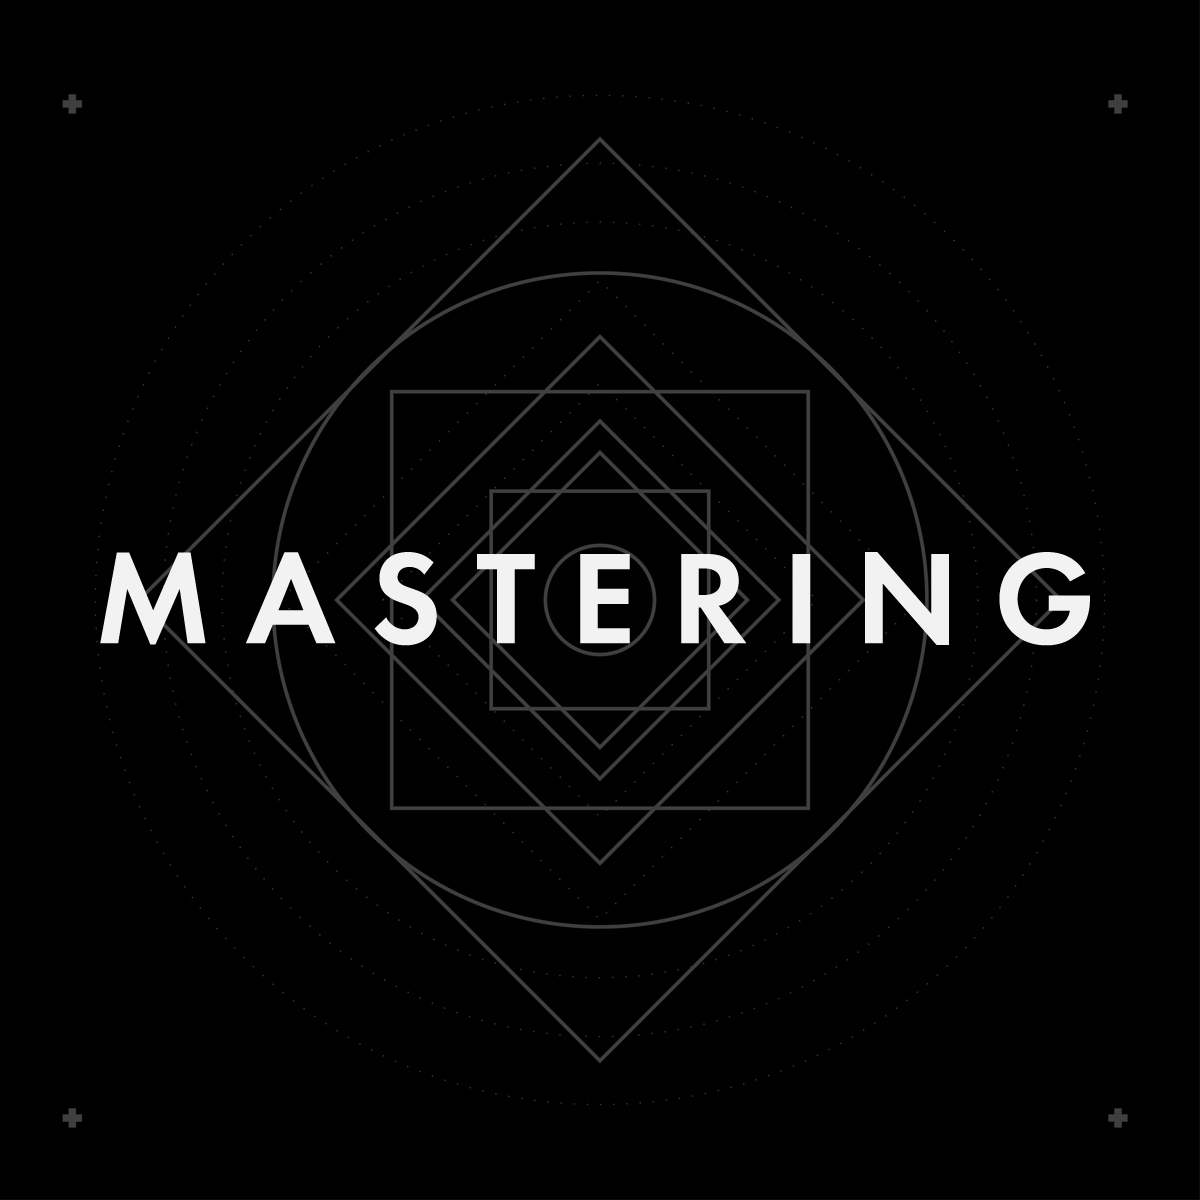 Mastering service / Pro / Medium / Easy / Basic